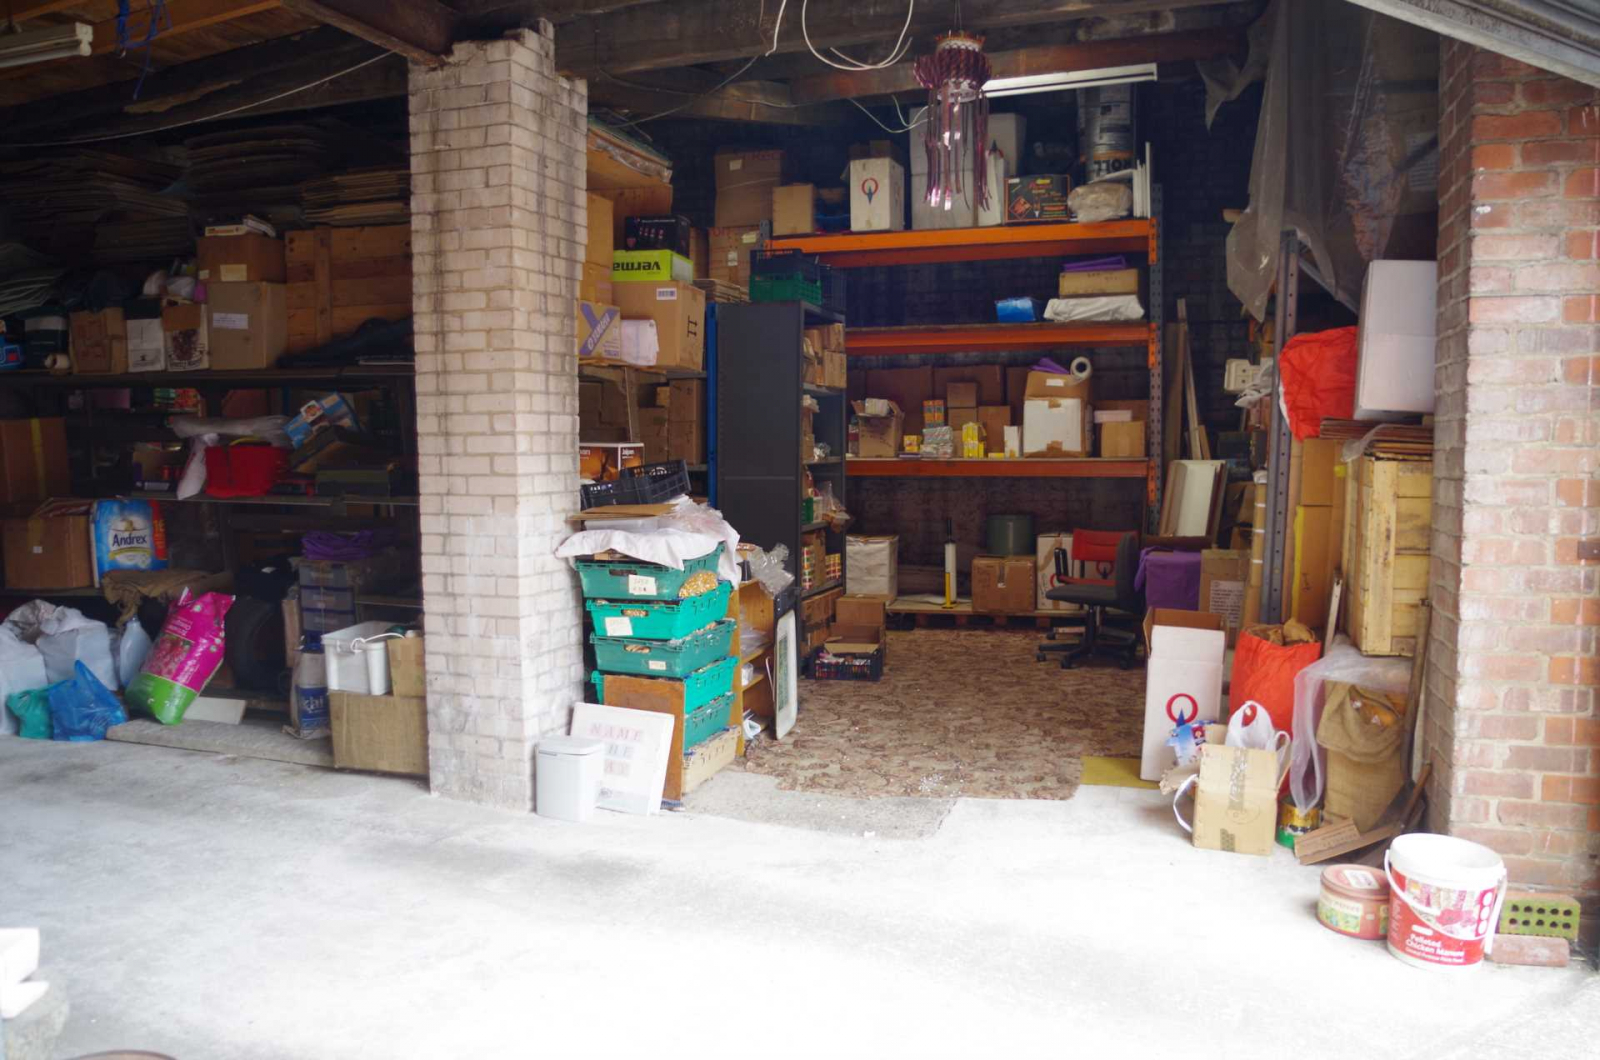 B1 Office & Workshop Unit for Sale Freehold in Bolton, Lancashire